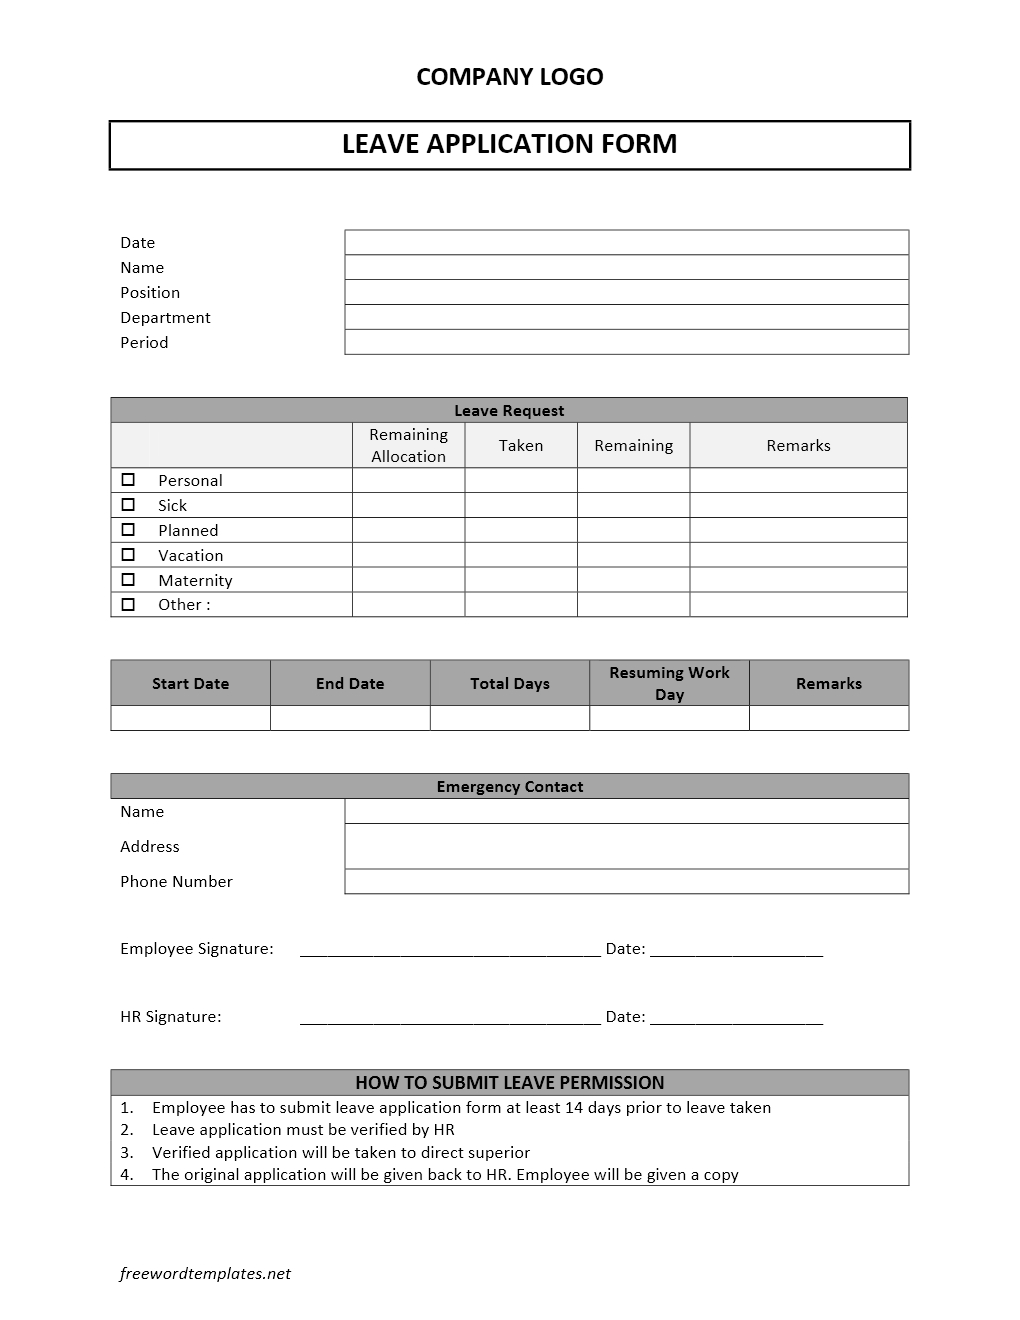 Leave Application Form – Sample Leave Request Form